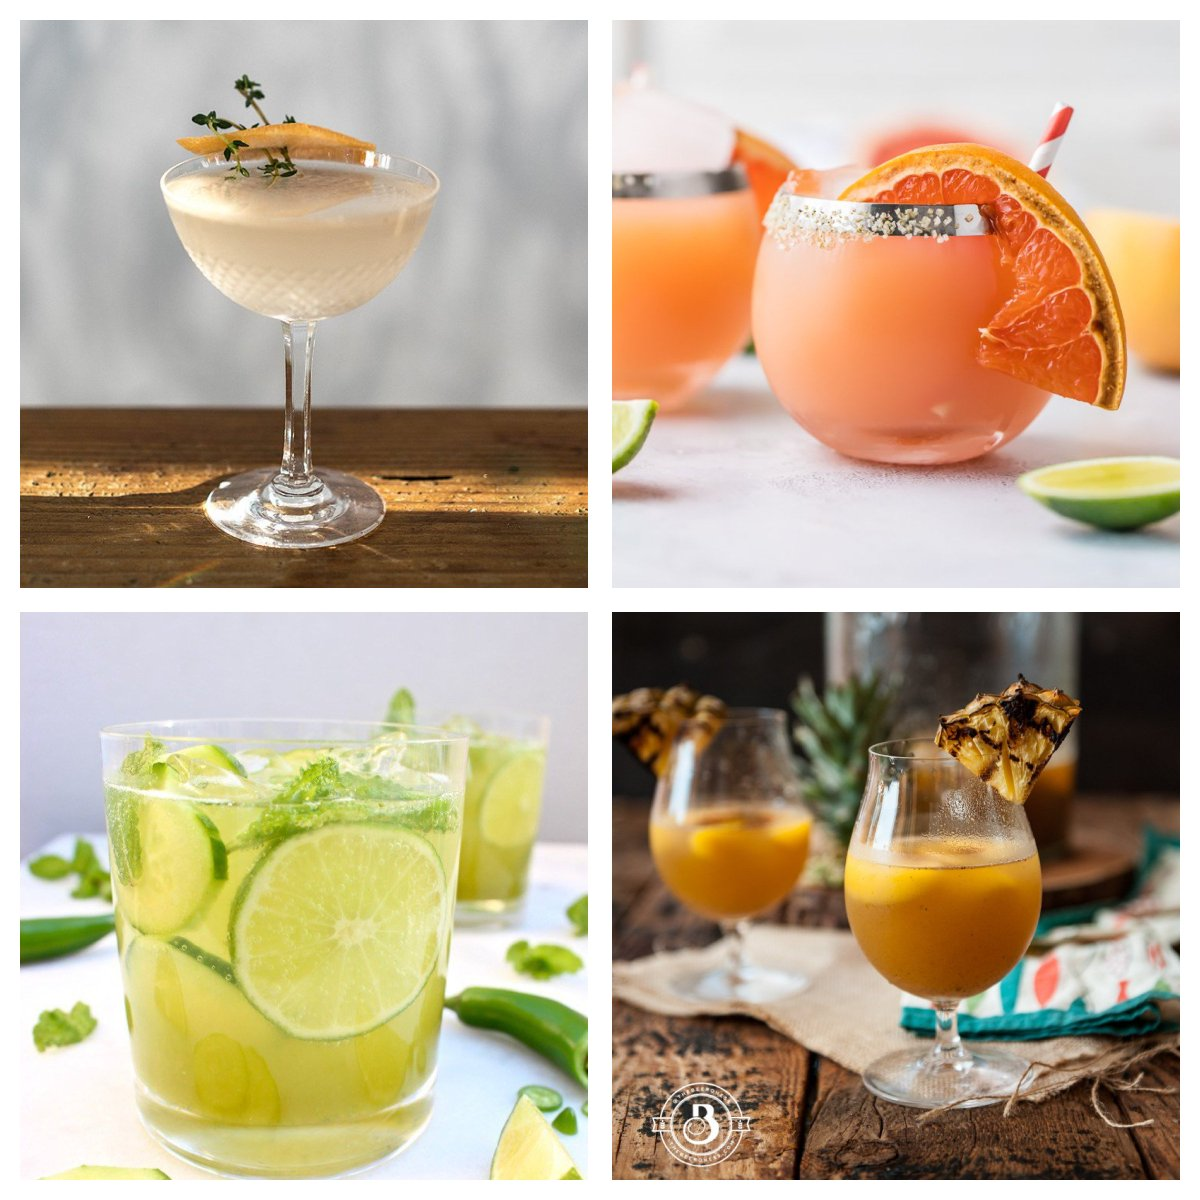 15 Stunning Farm-to-Glass Cocktails To Enjoy Poolside this Summer! https://t.co/JAMXMl8c6K #cocktails #summerfun https://t.co/OhhDFf7dUh